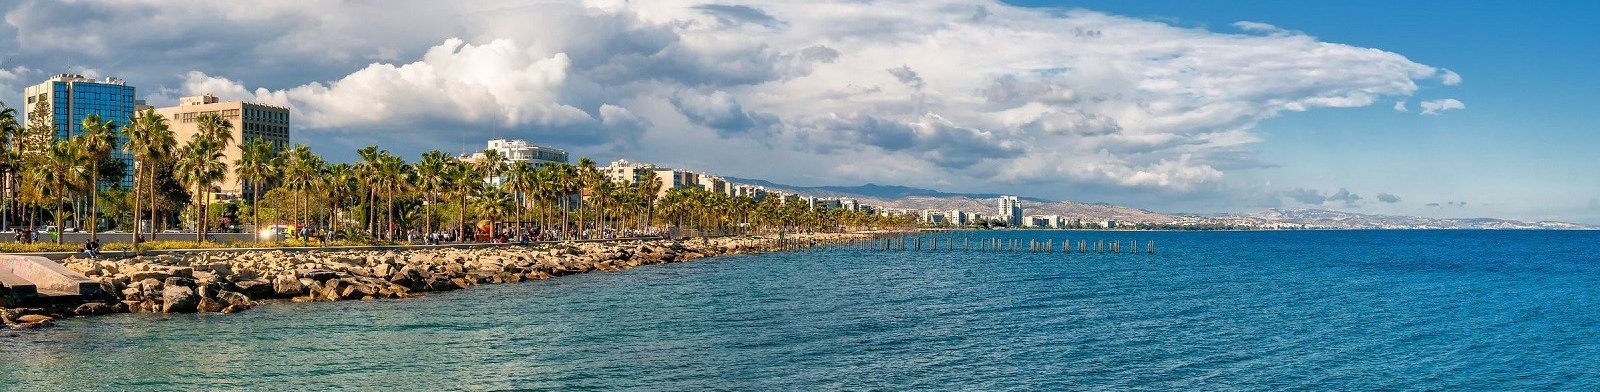 Limassol seafront view